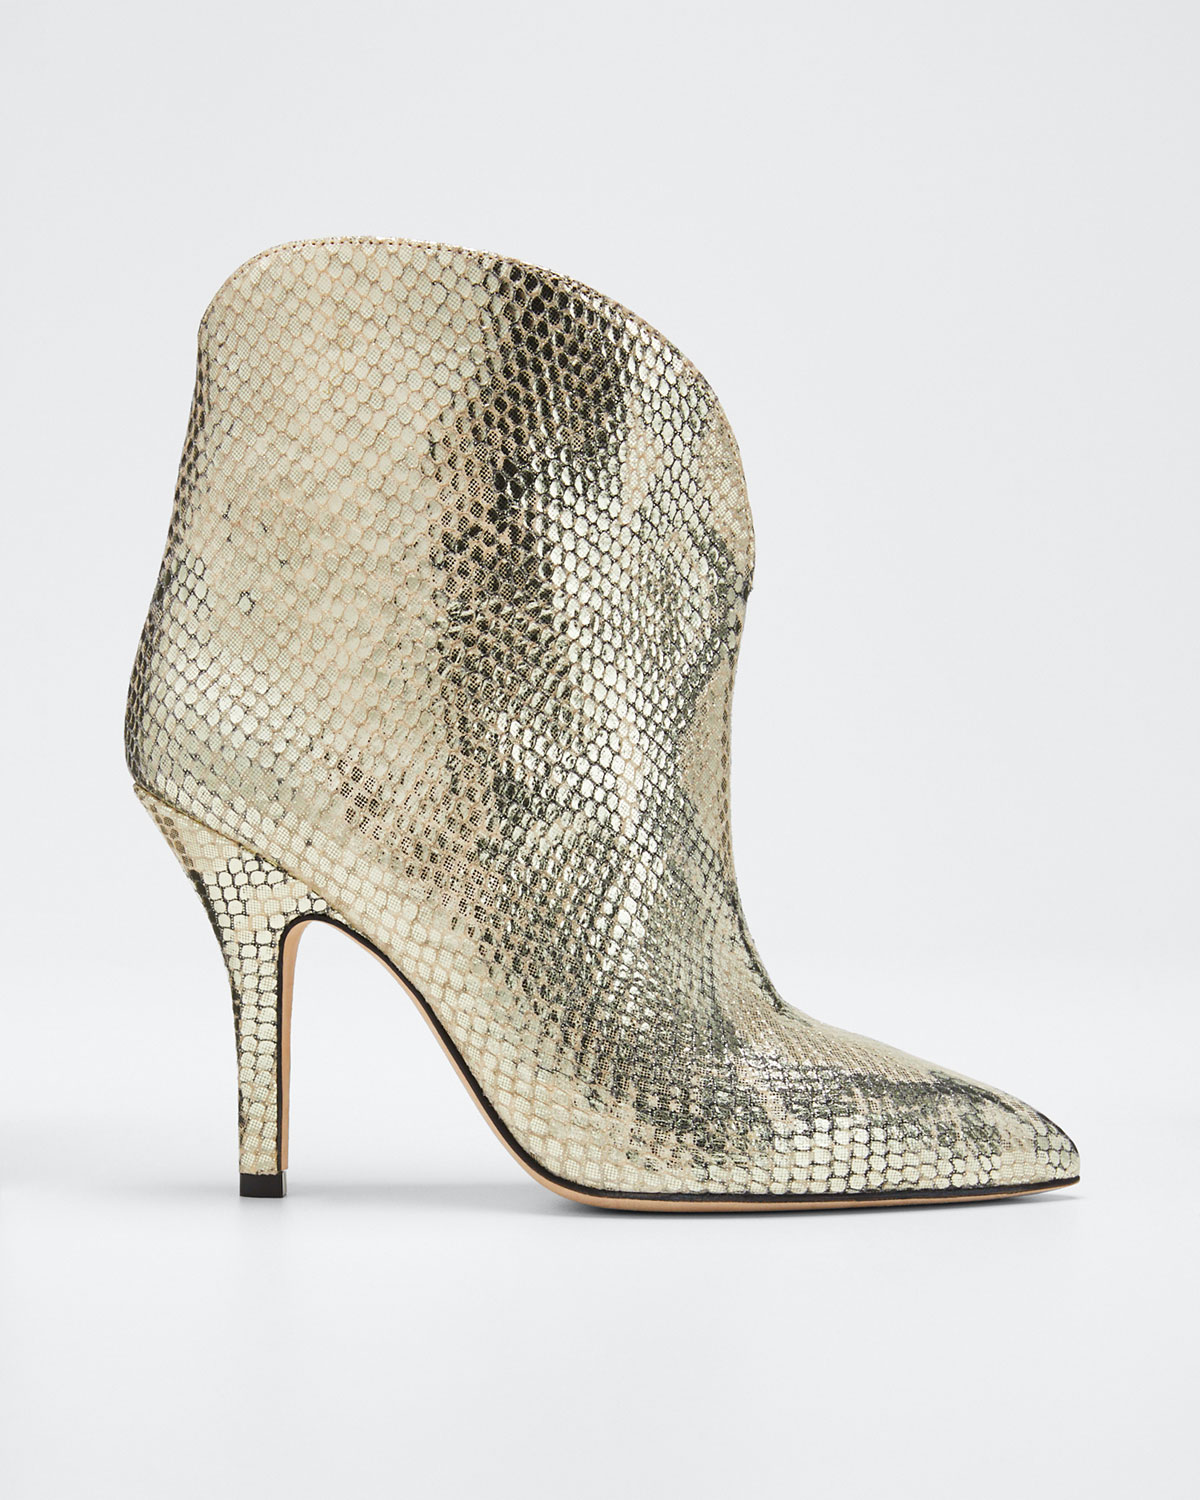 Paris Texas Boots PYTHON-PRINT HIGH ANKLE BOOTS